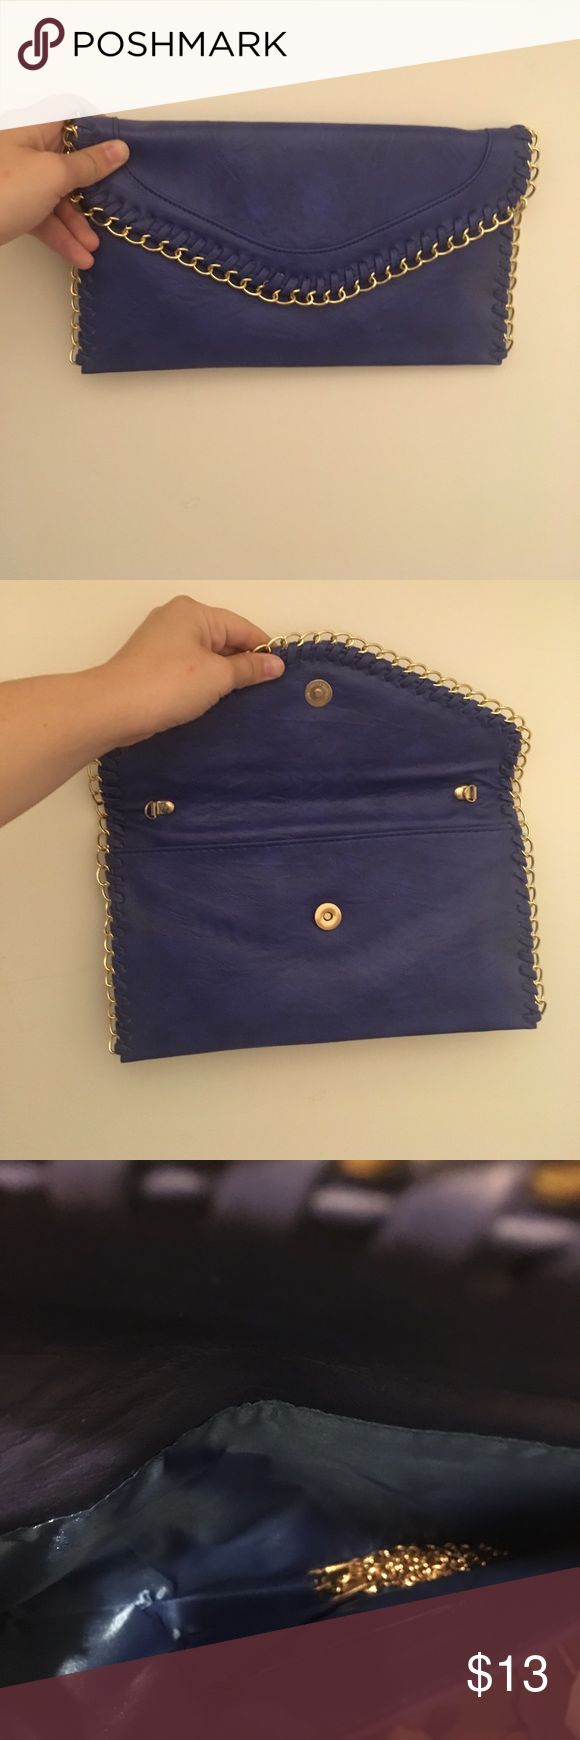 ⭐️ Boutique ⭐️ Blue Clutch Such a pretty royal blue clutch! Comes with detachable chain to wear crossbody or on your shoulder Bags